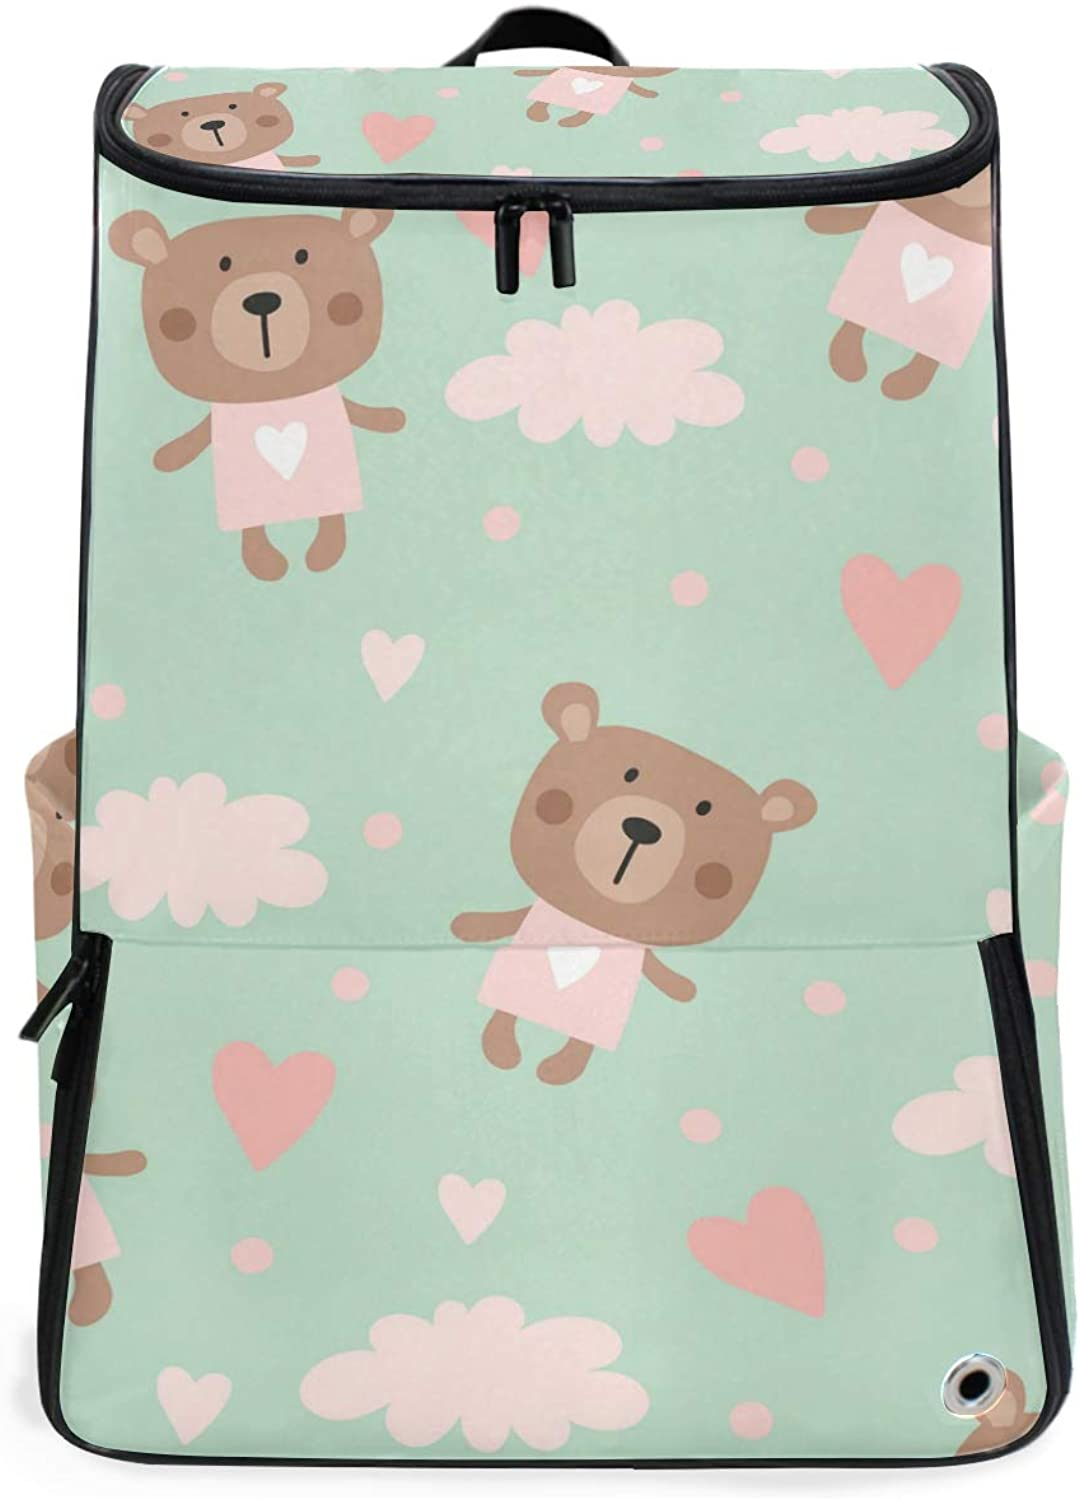 FANTAZIO Cartoon Bear and Cloud Professional Weekender CarryOn Backpack for Travel & Business